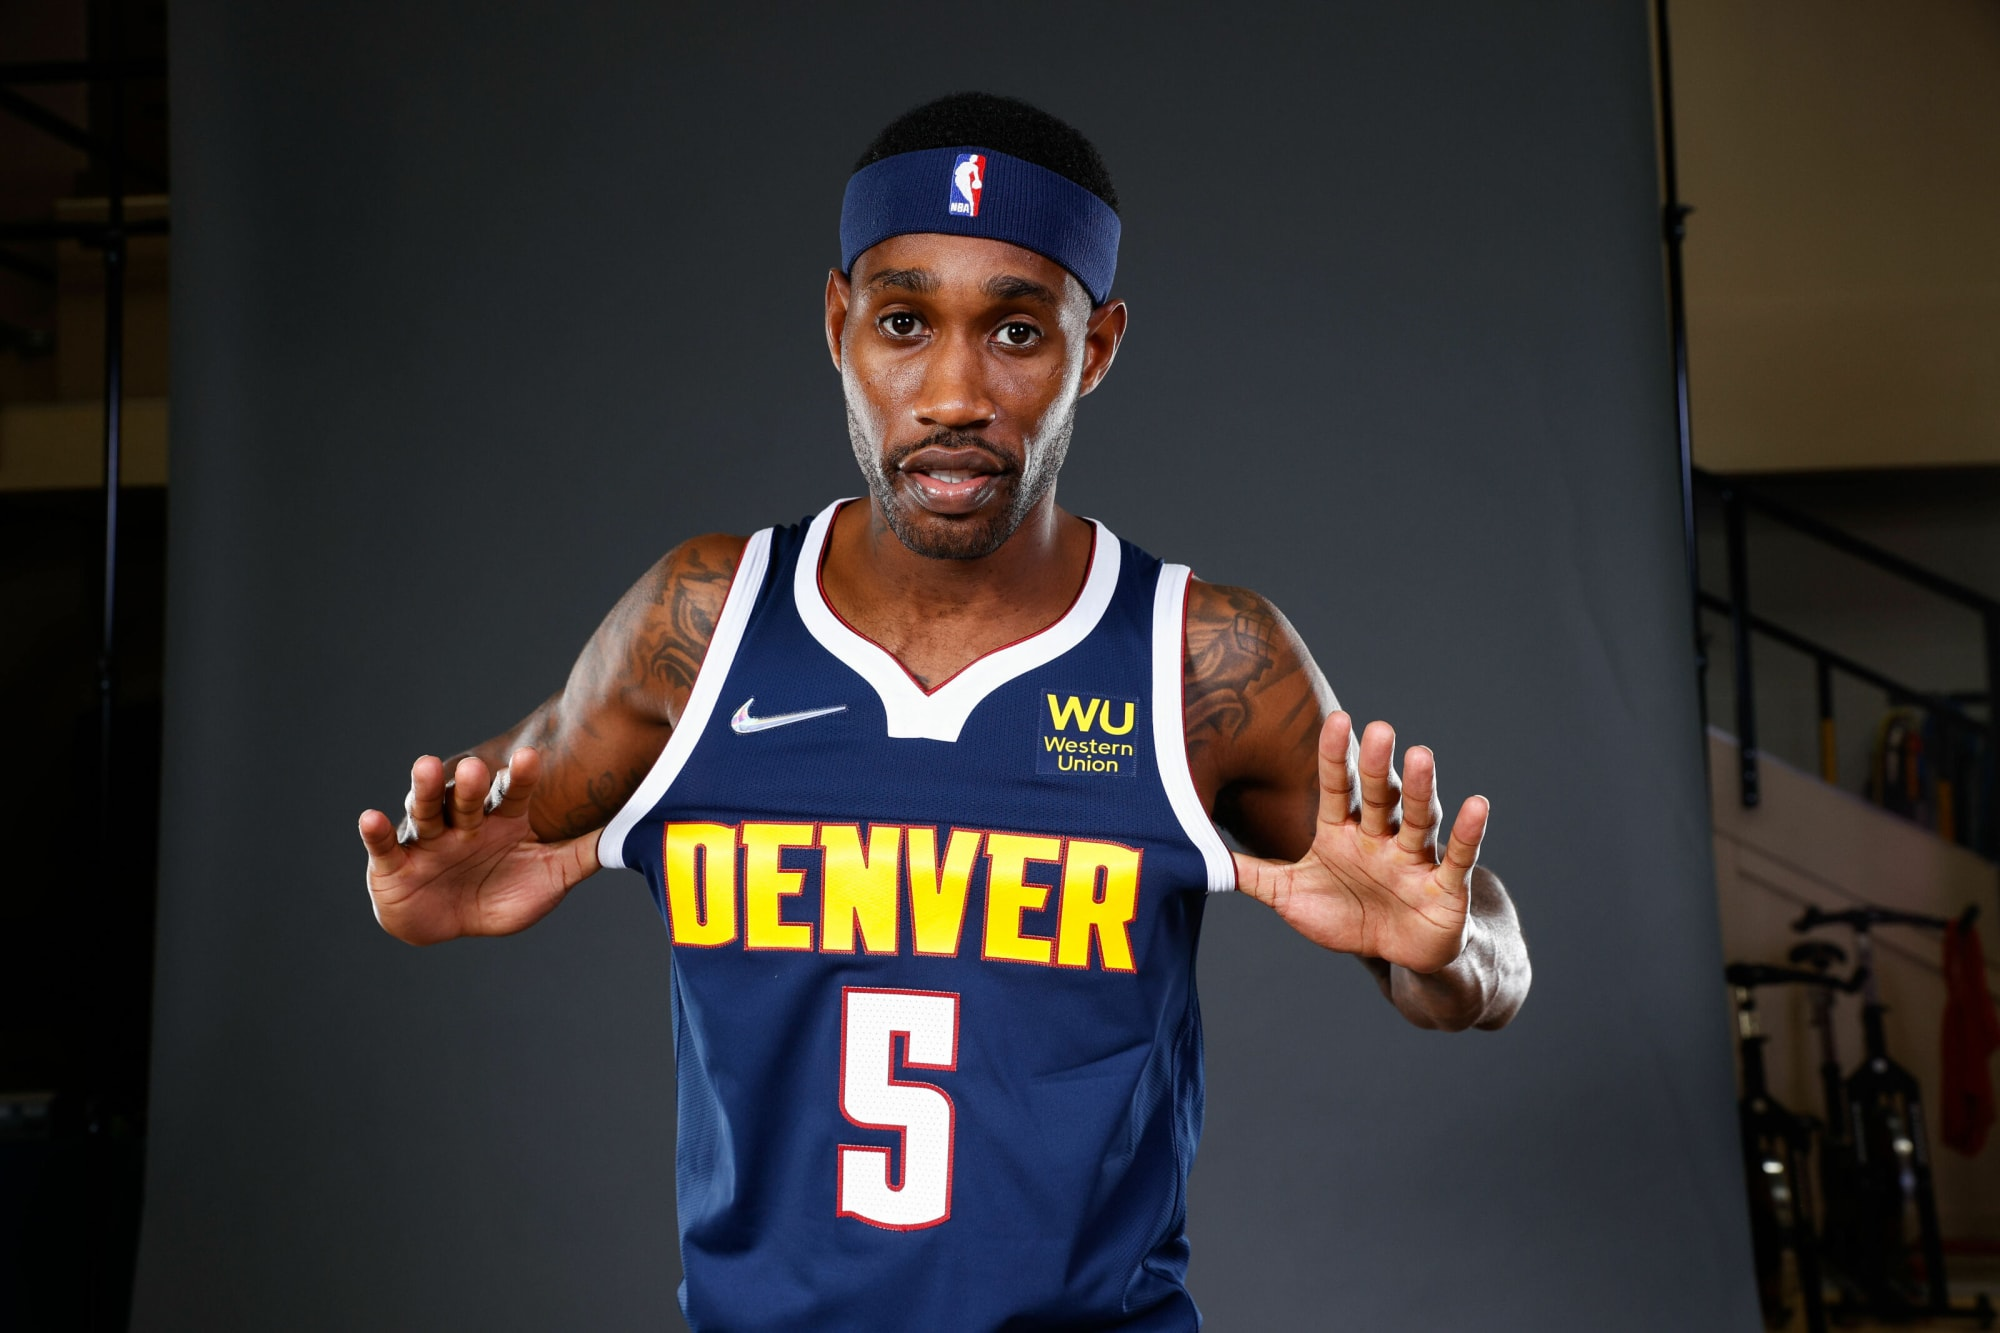 Denver Nuggets: 4 burning questions entering training camp - Nugg Love